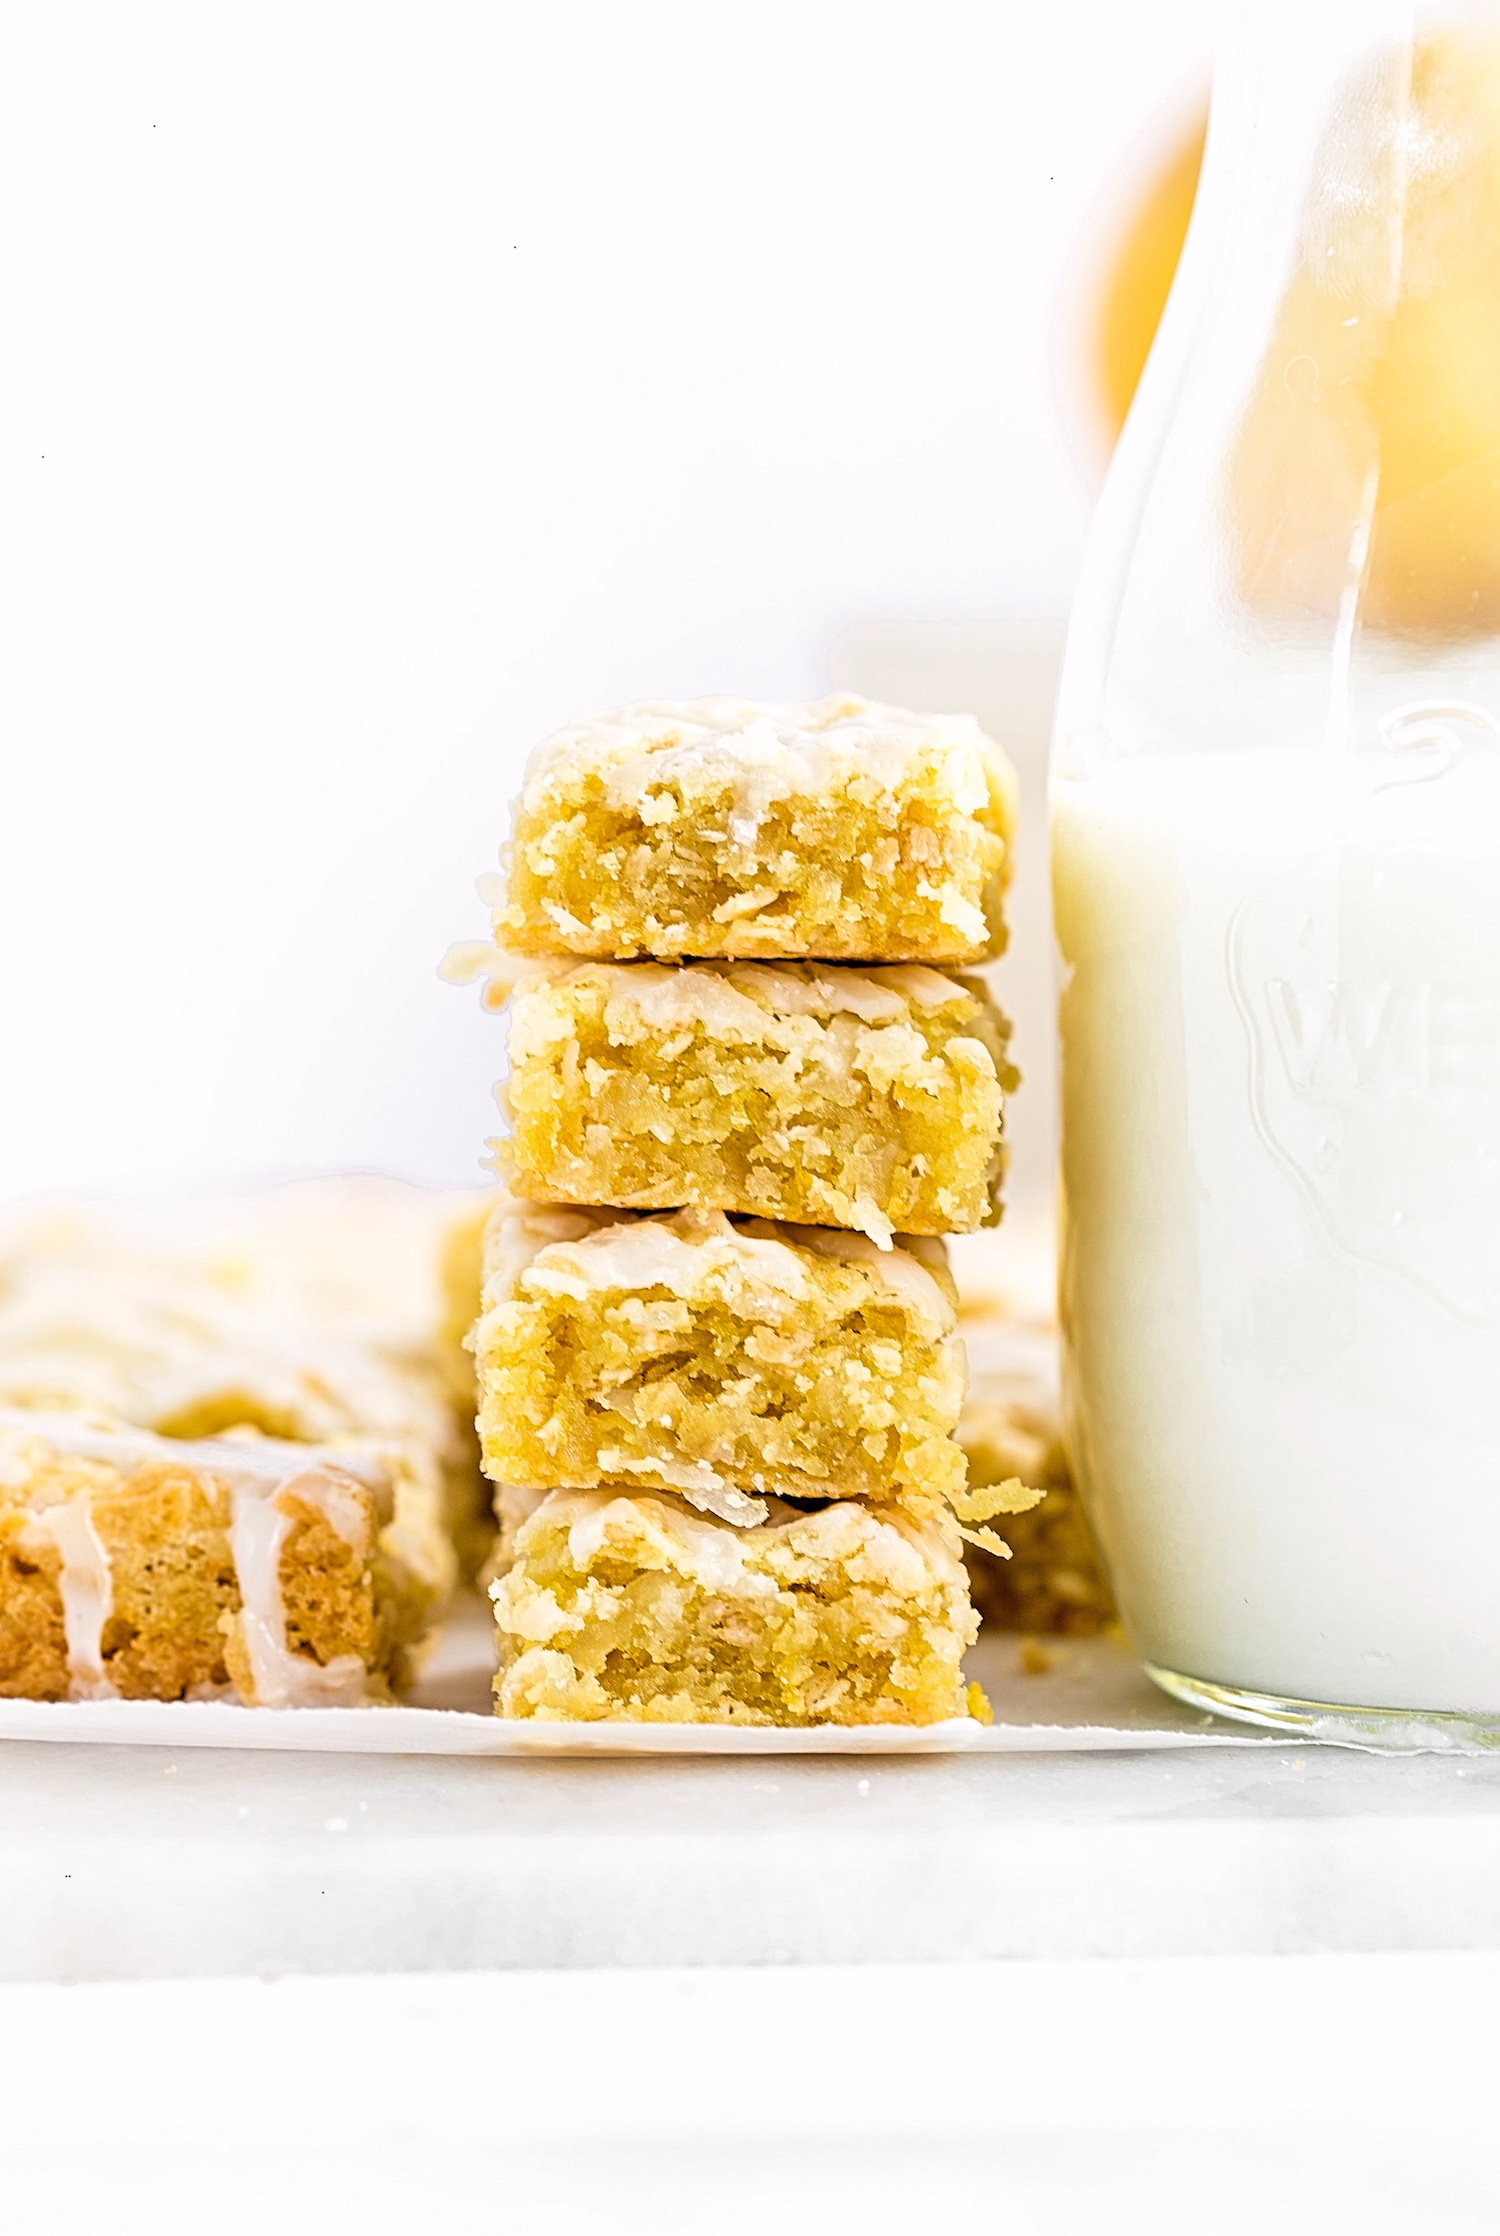 Lemon Coconut Oat Blondies: soft, gooey, rich lemon blondies filled with coconut flakes and oats. Quick and easy! | TrufflesandTrends.com